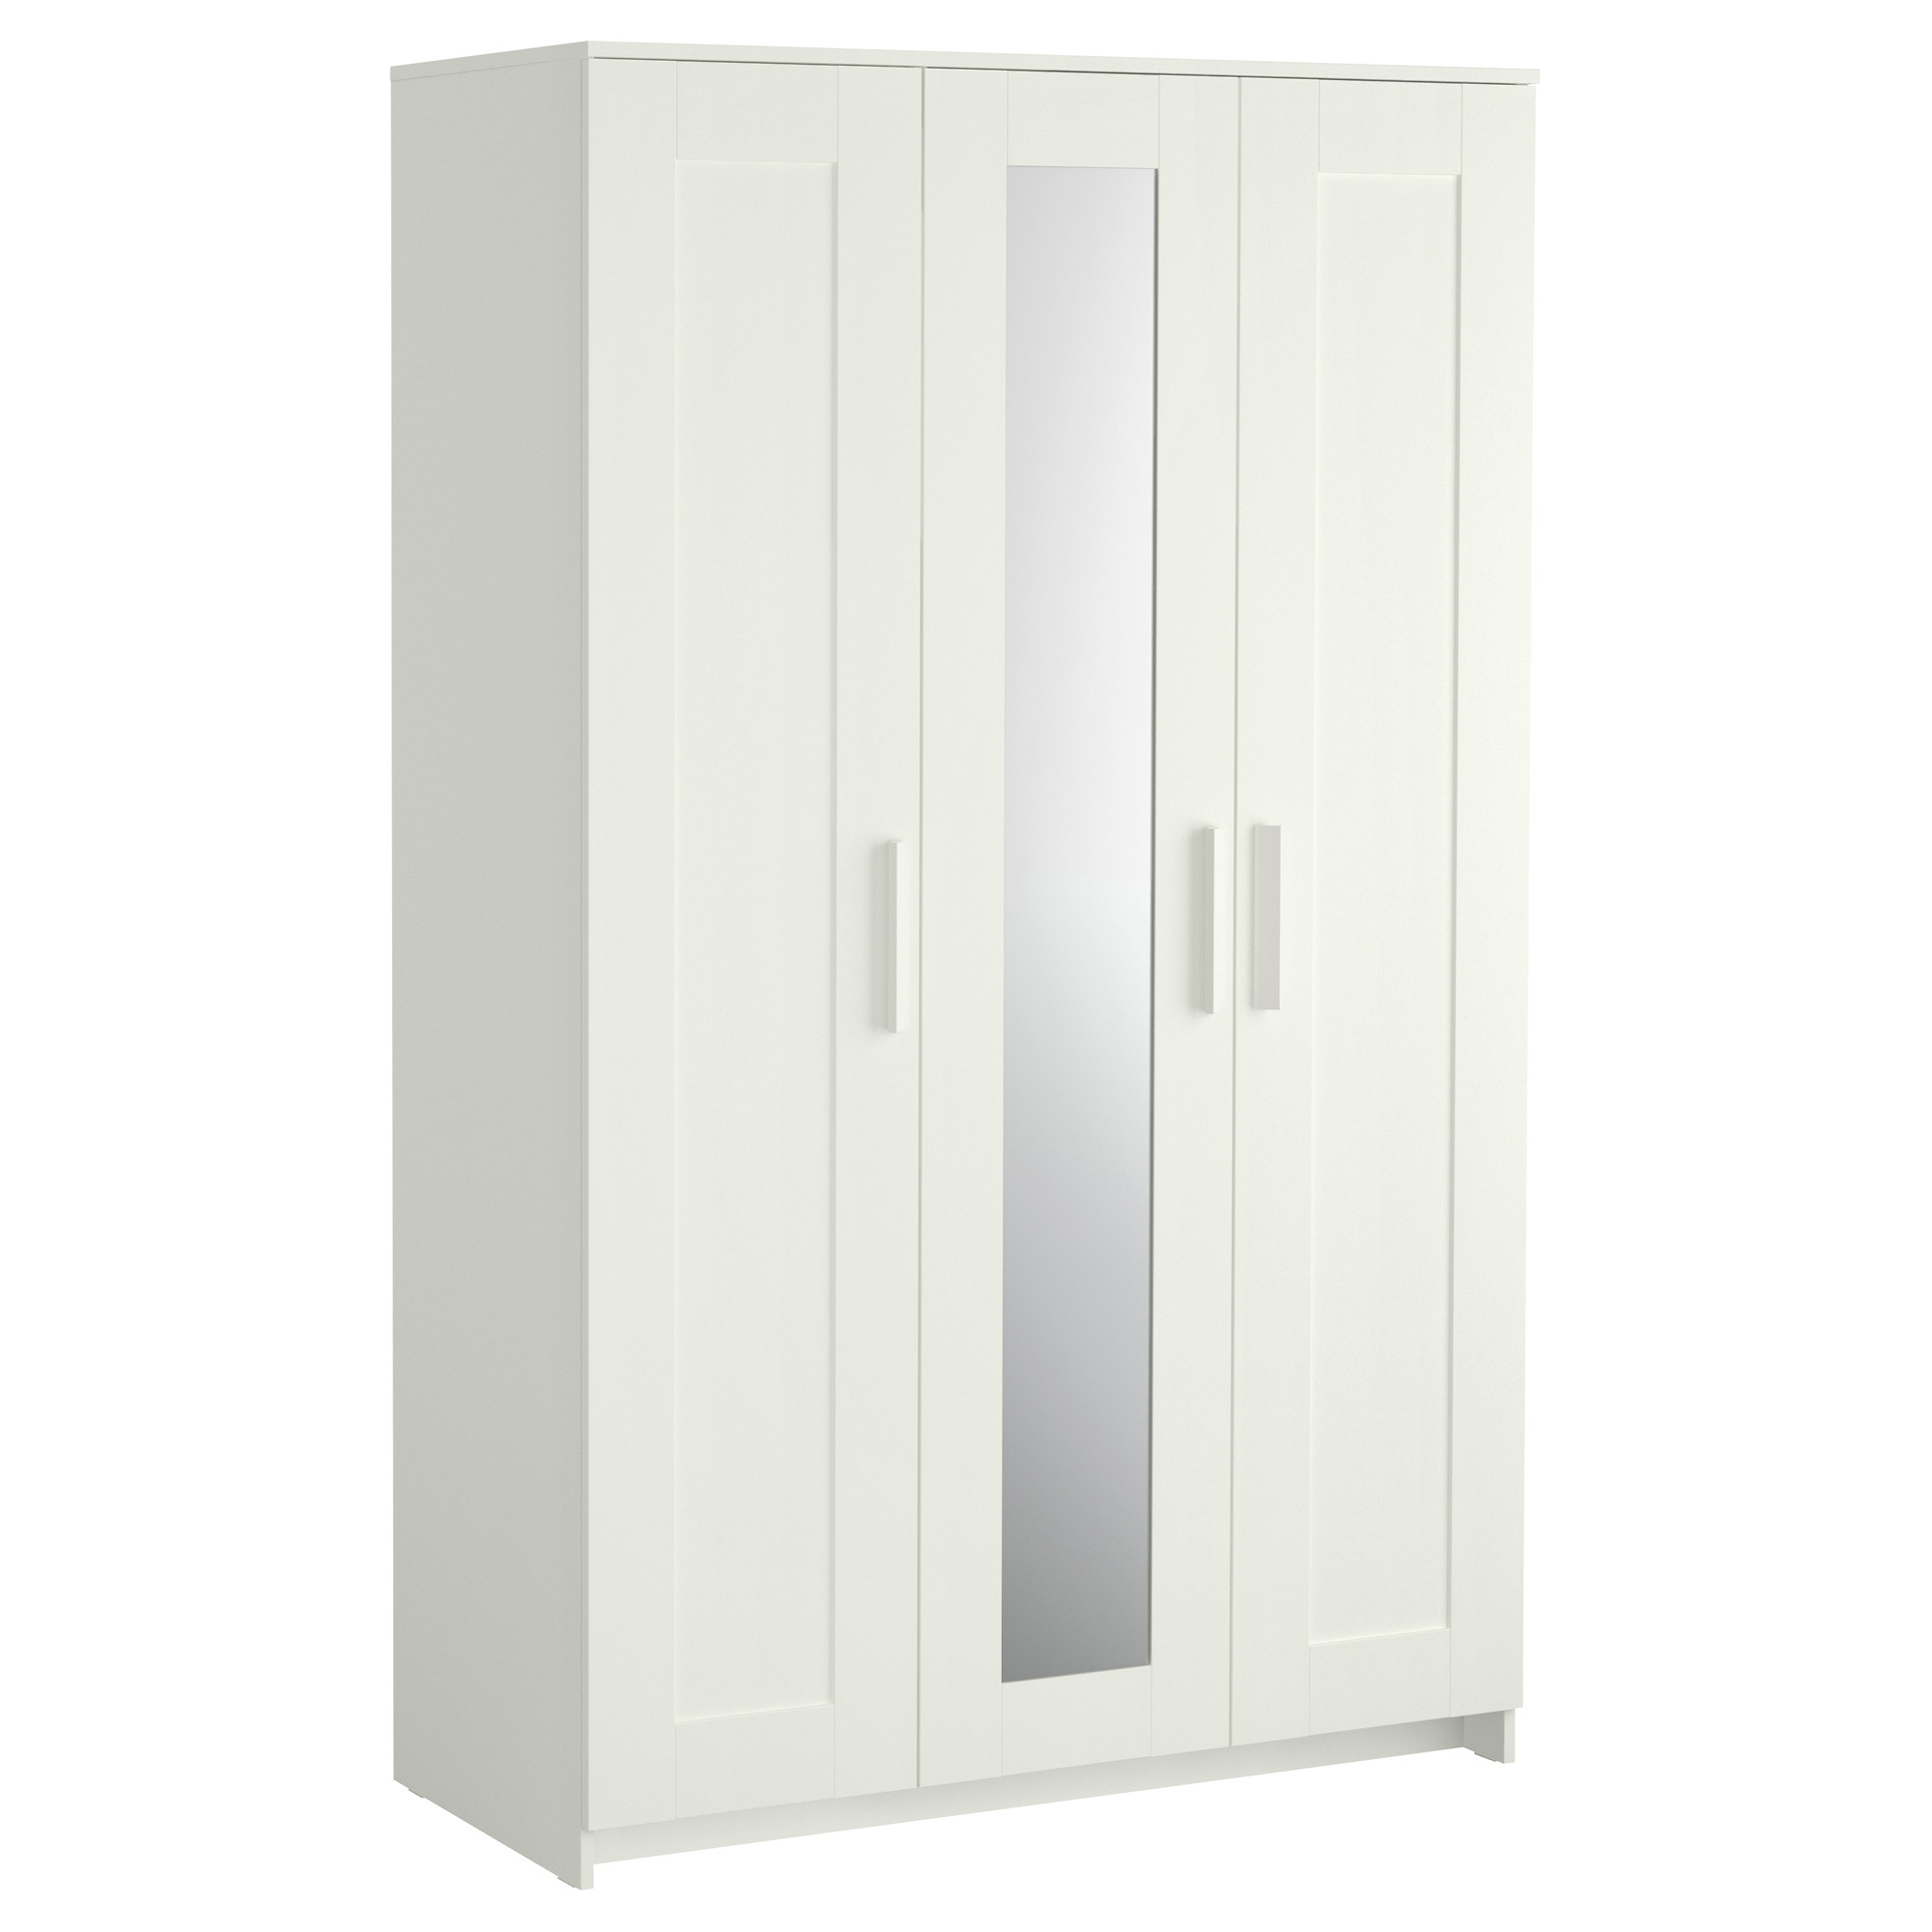 Most Popular Brimnes Wardrobe With 3 Doors – White – Ikea Inside White Three Door Wardrobes (View 11 of 15)